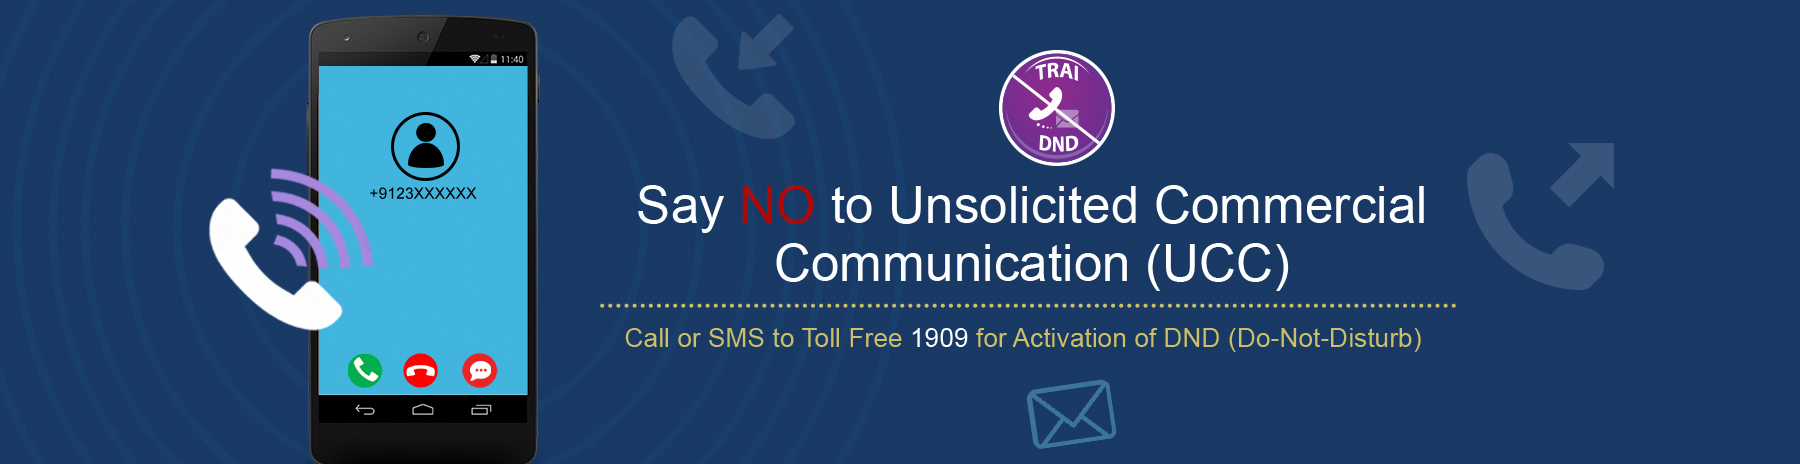 Say NO to Unsolicited Commercial Communication (UCC)